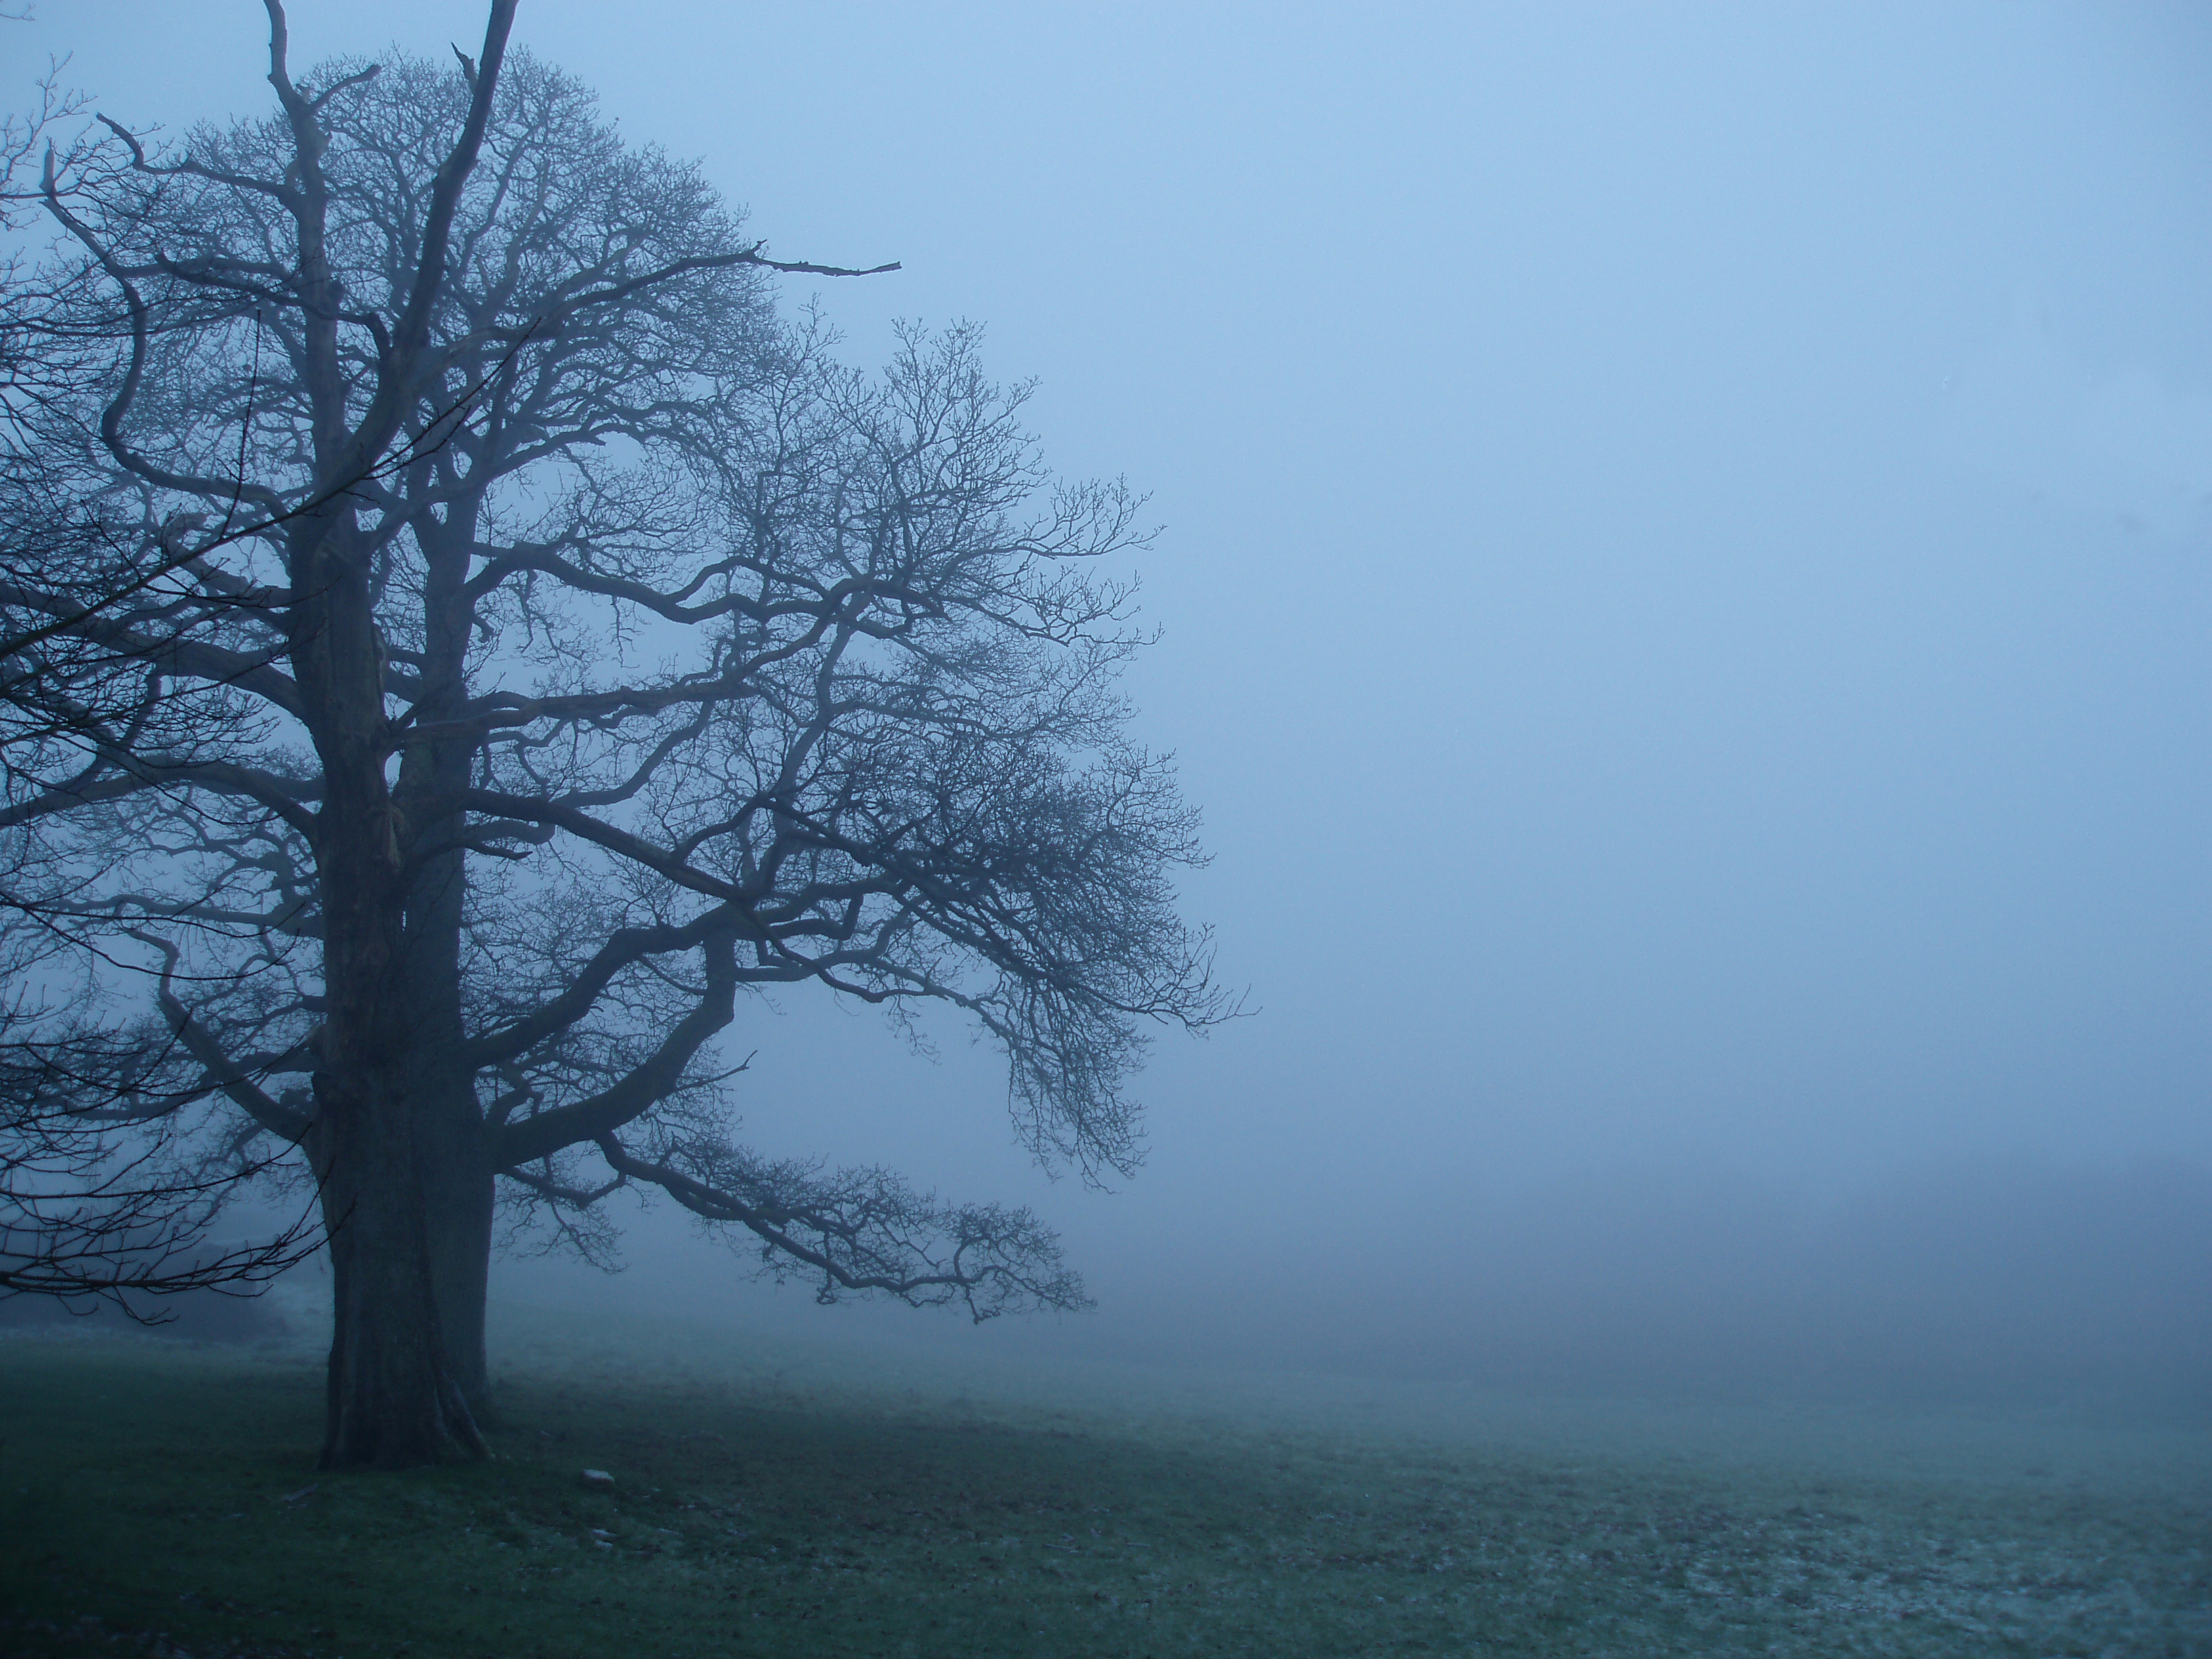 misty, foggy winter dawn with a leafless tree silhouetted against a misty background